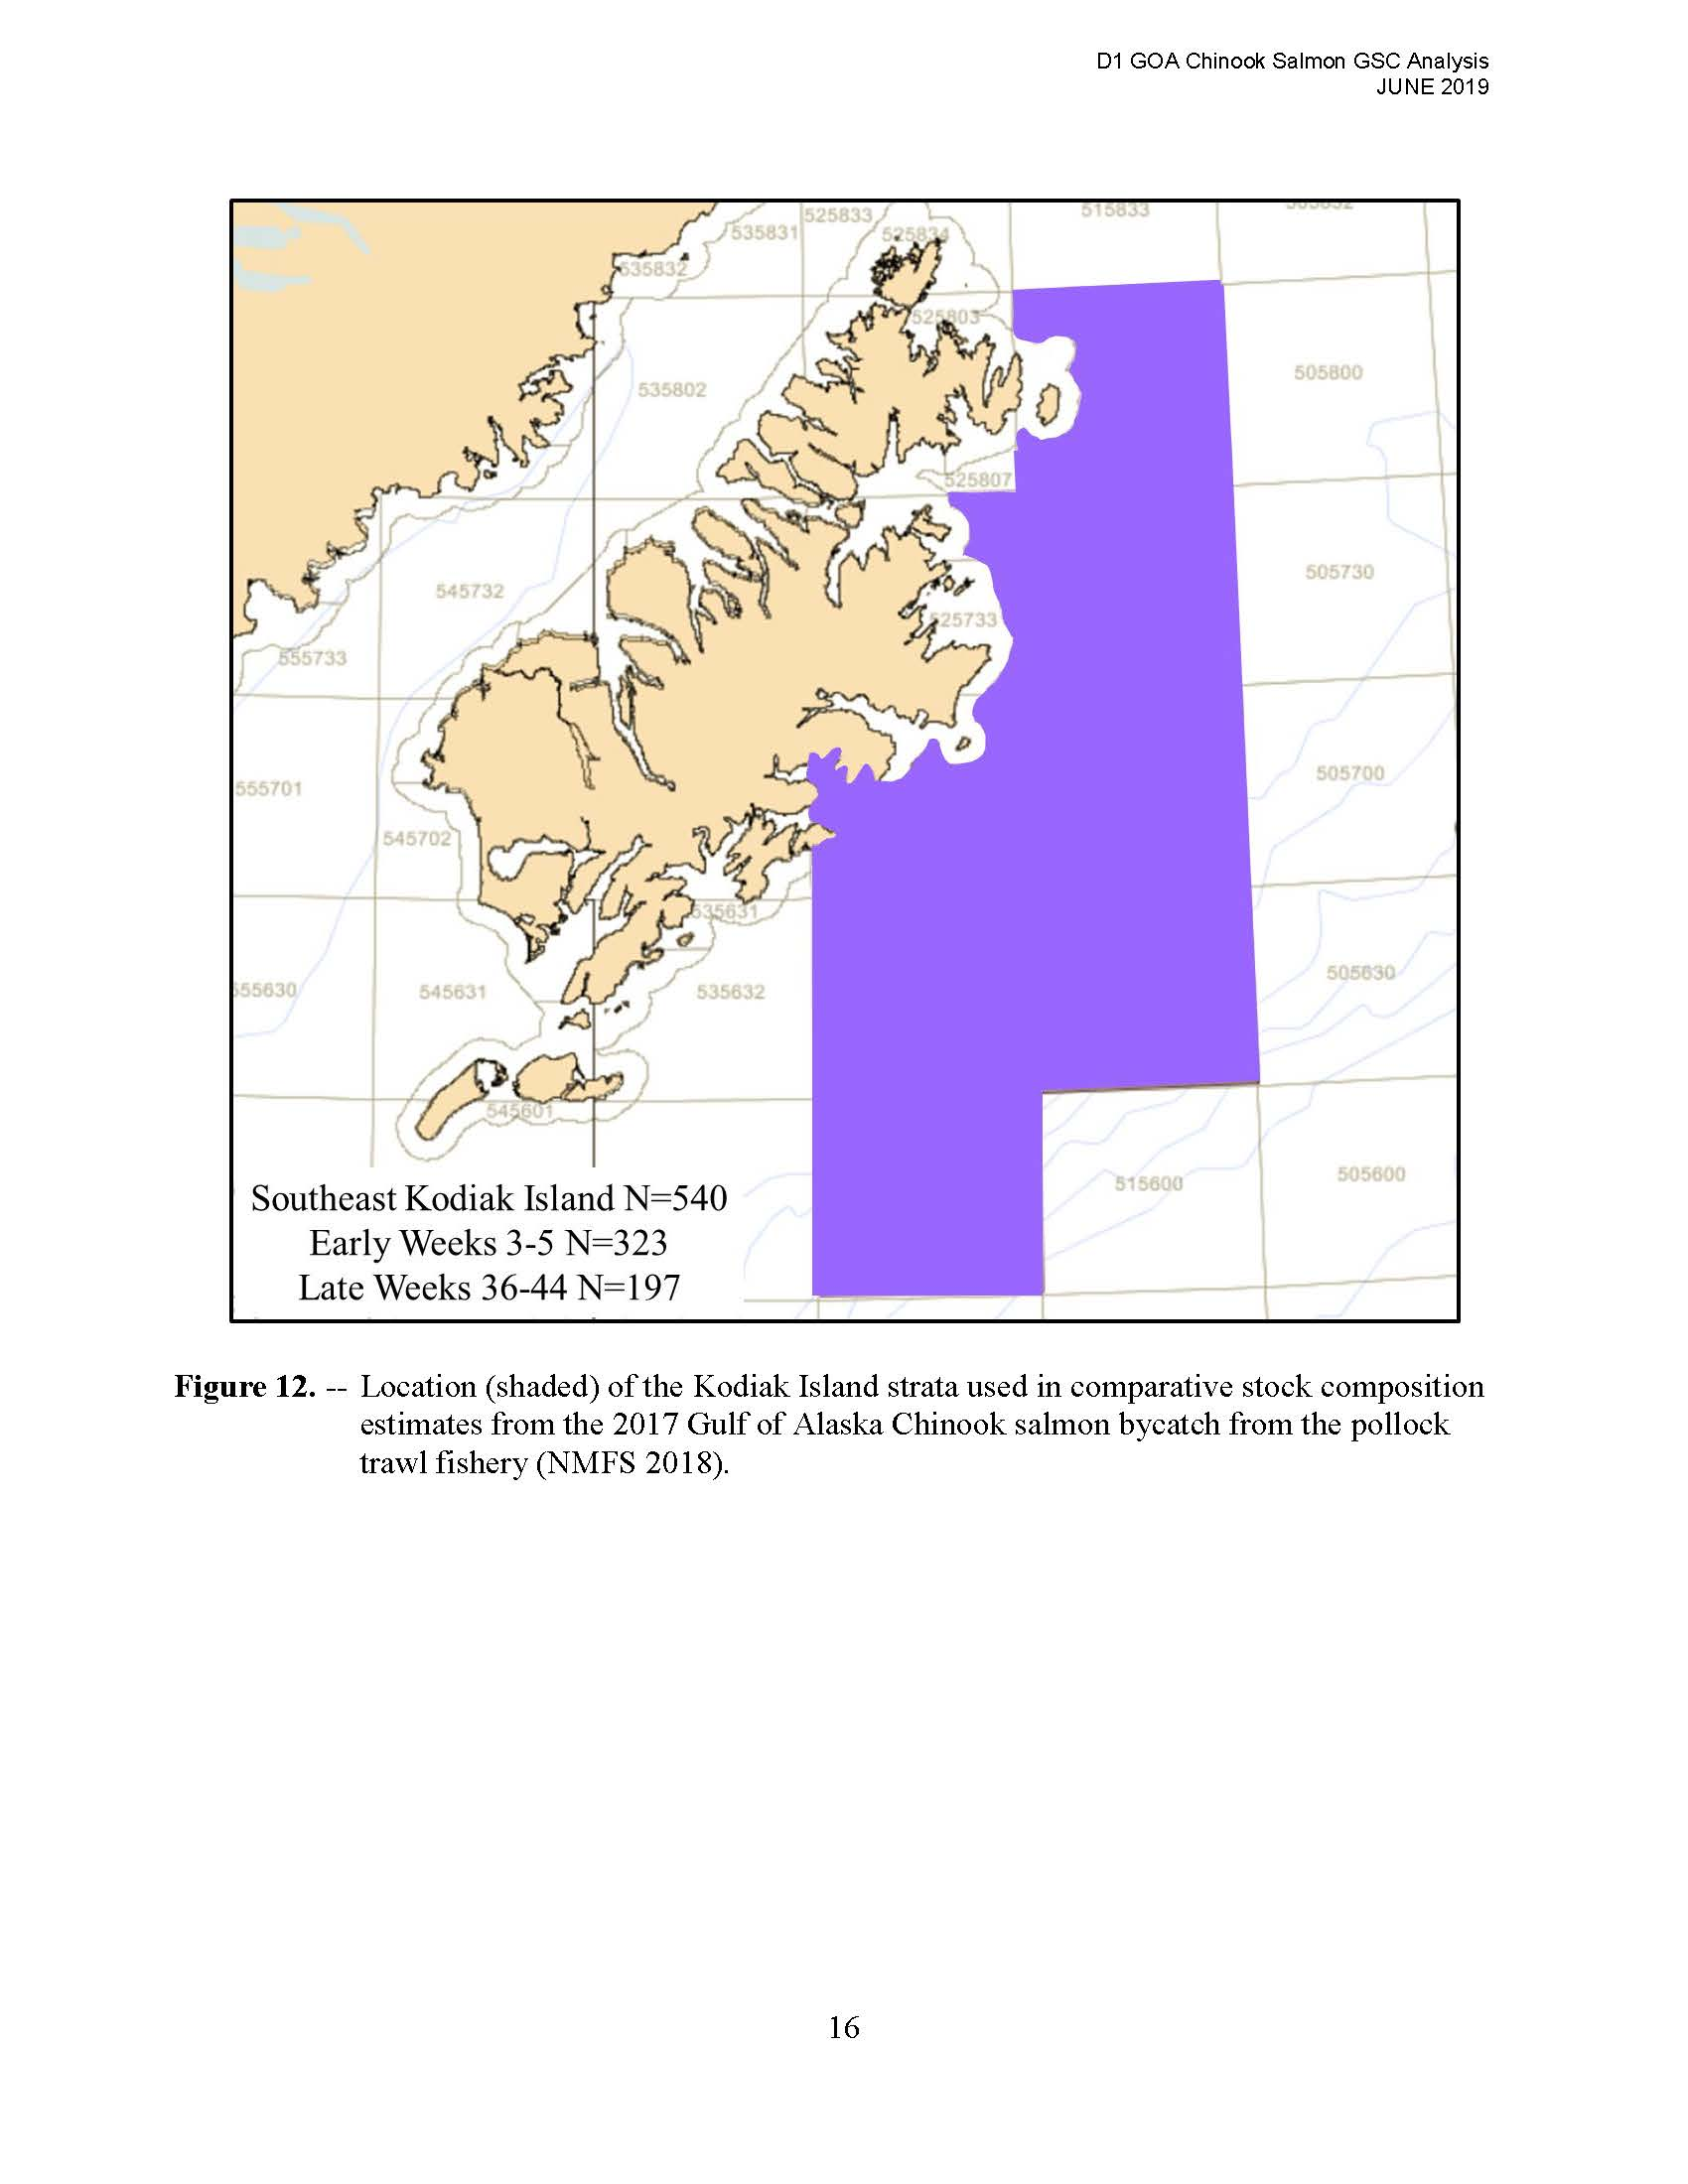 DownloadFile  GOA Chinook Salmon Stock Composition Report_Page_24.jpg